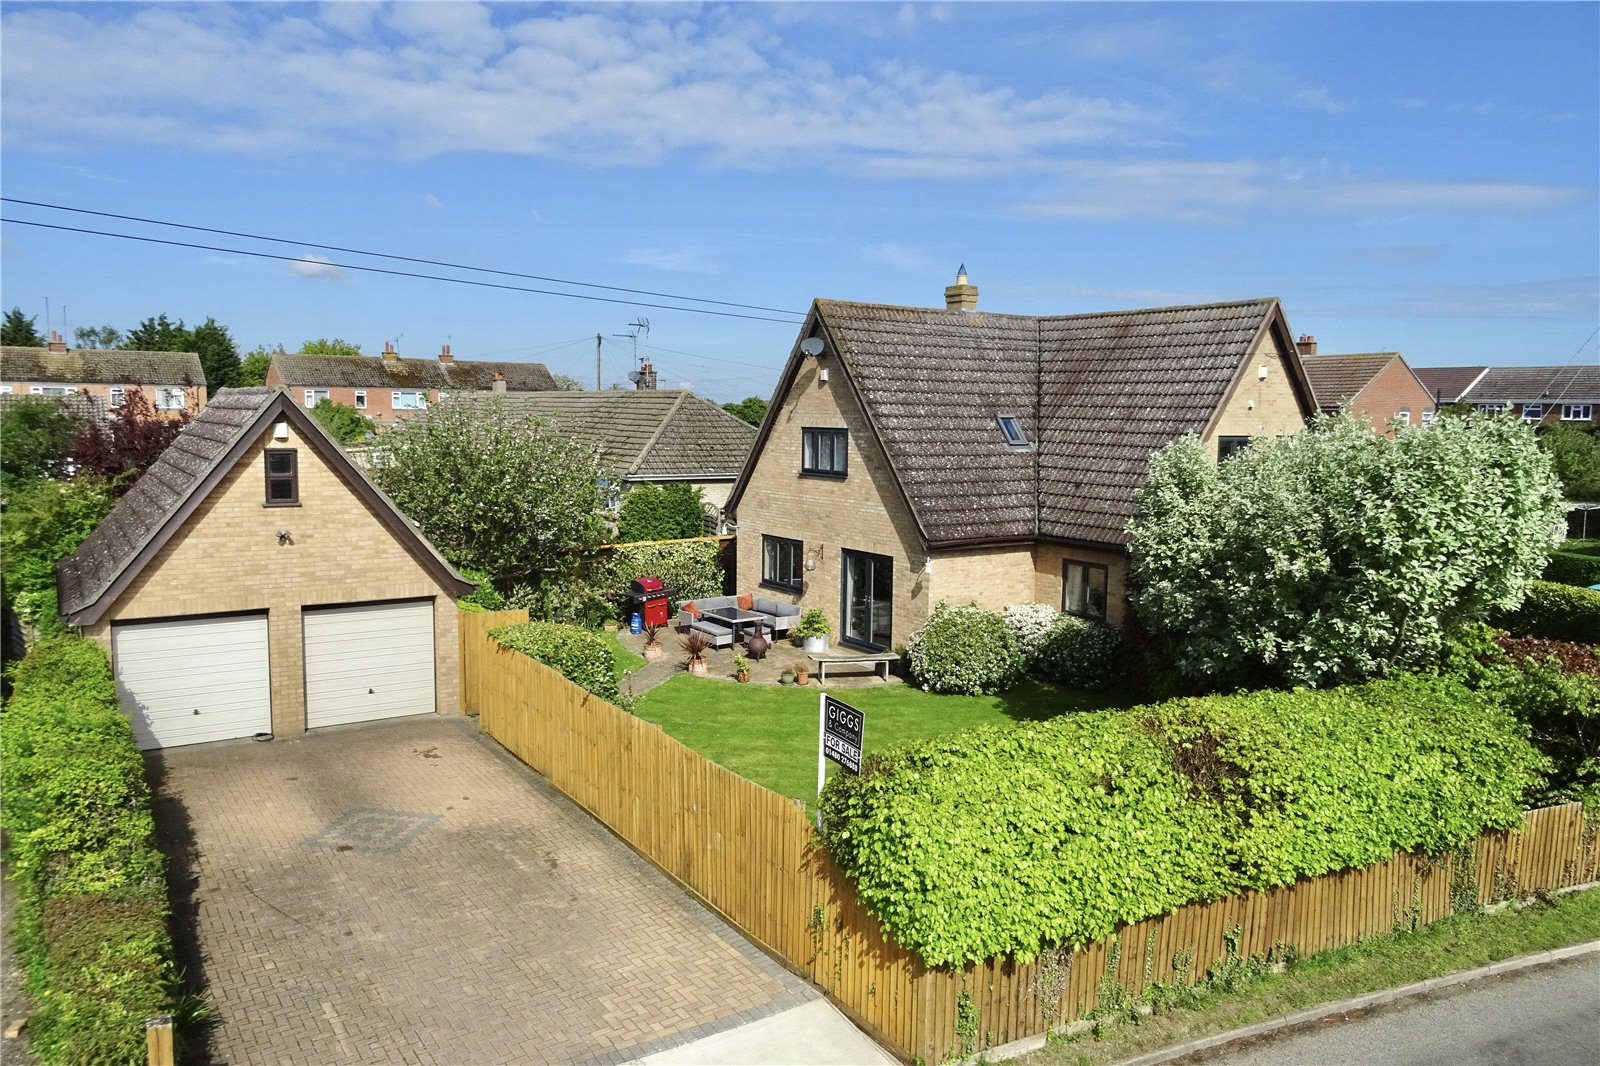 4 bed house for sale in The Green, Ellington, PE28